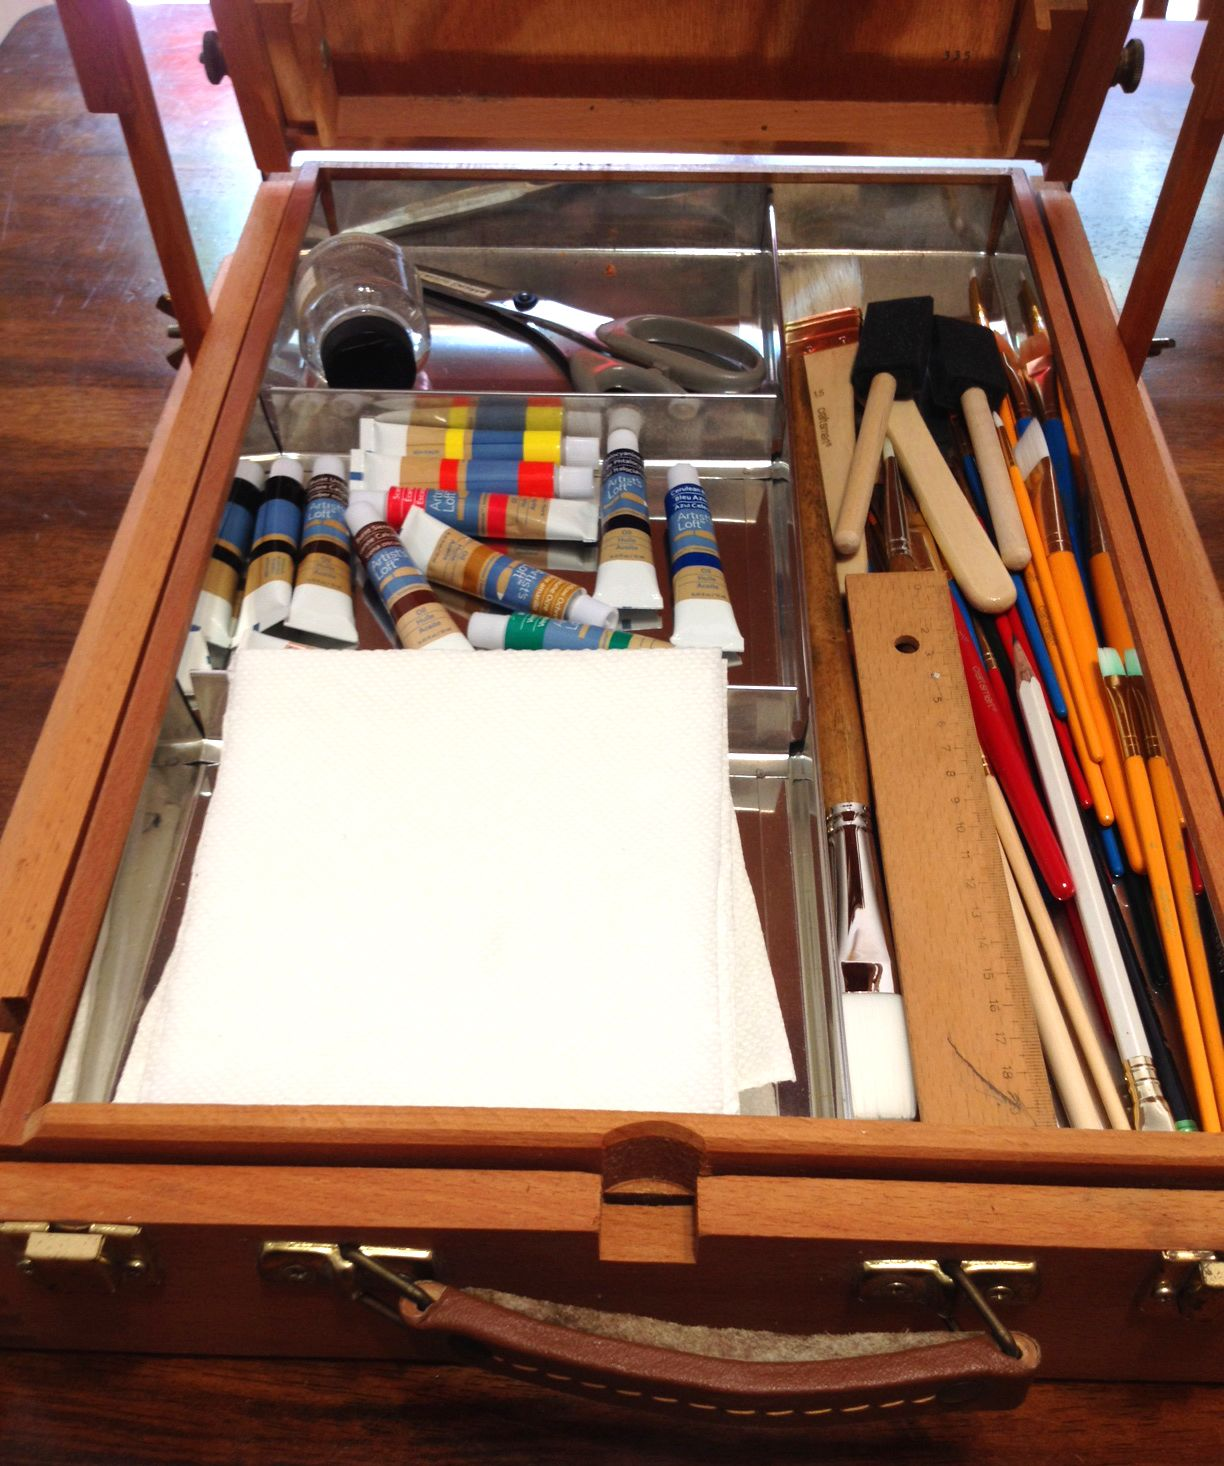 Ready for Plein Air painting. (With images) Plein air